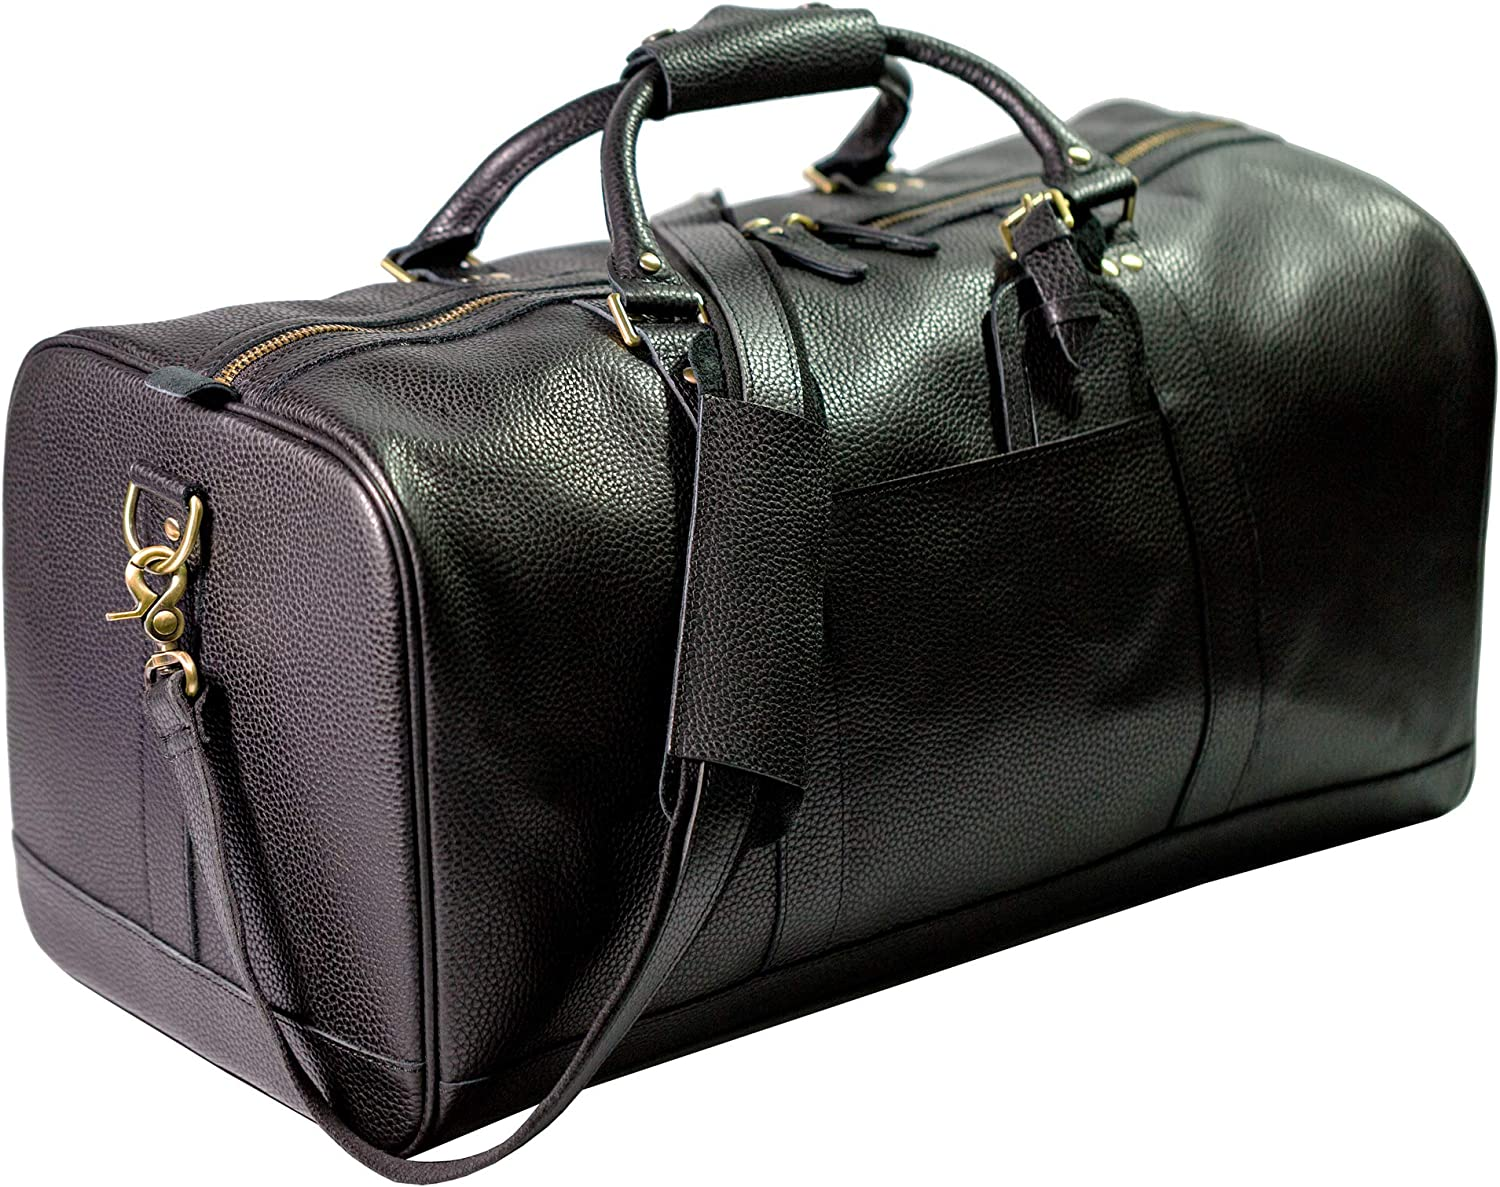 Polare 21 Soft Real Leather Weekender Travel Overnight Luggage Duffel Bag